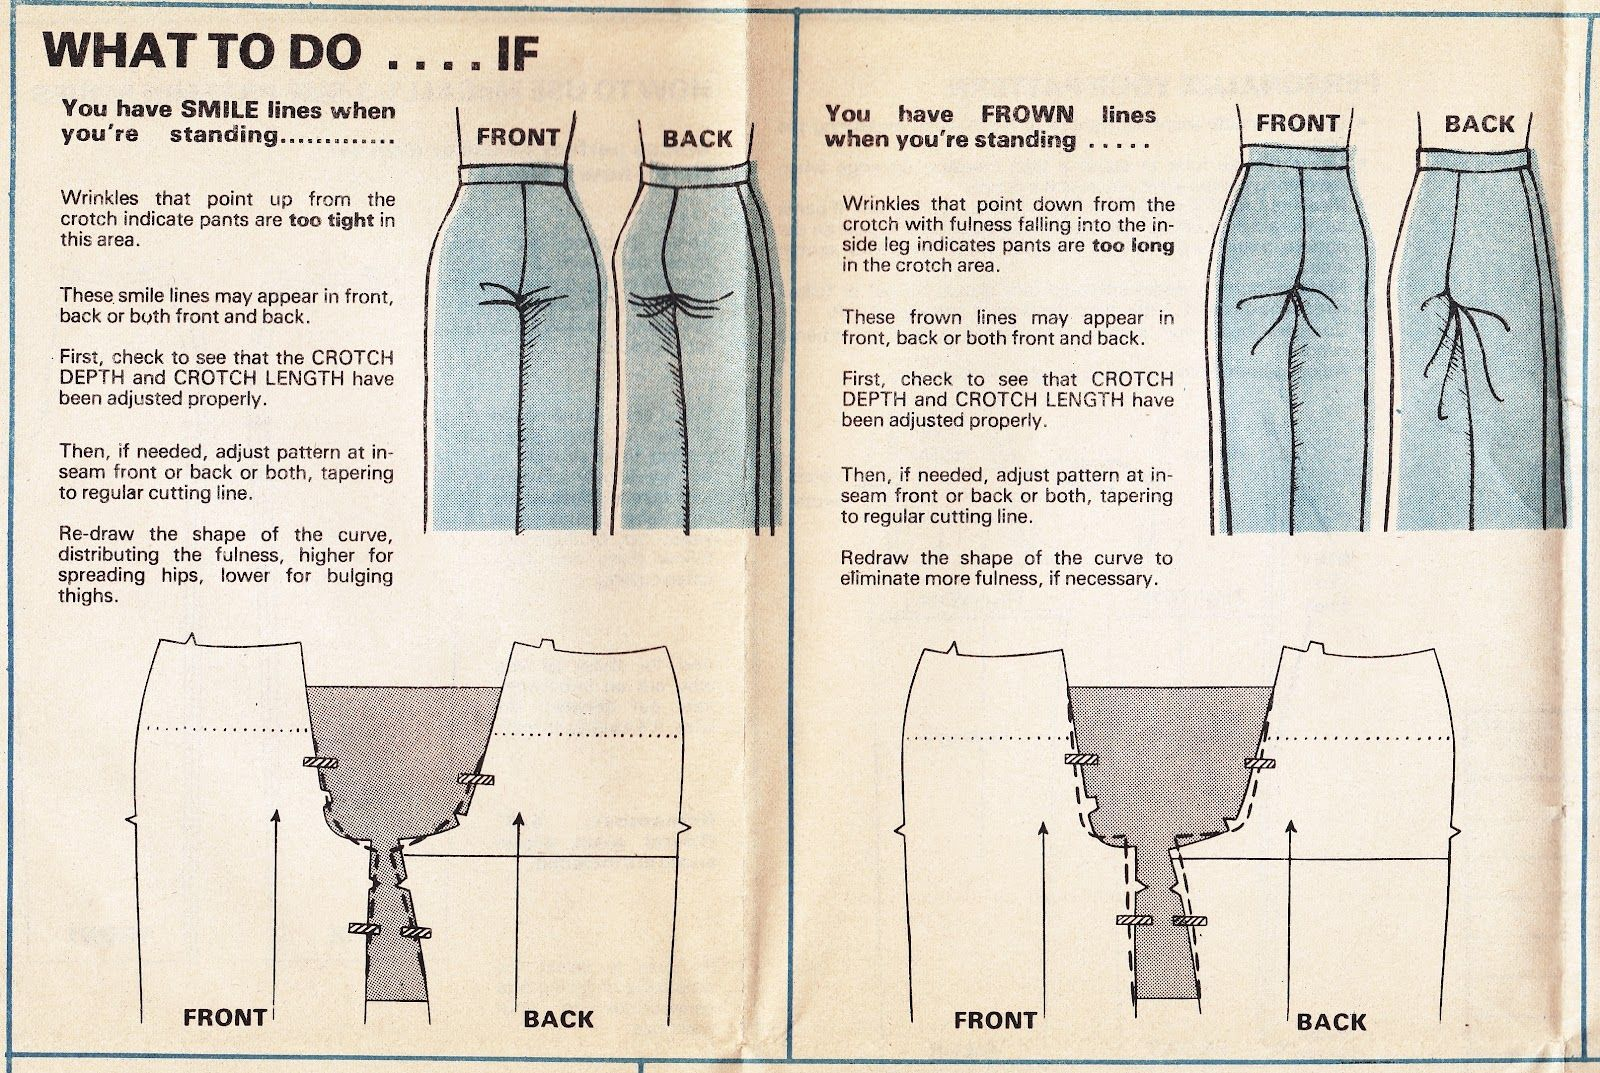 What to do it you have smile or frown lines on your pants when ...